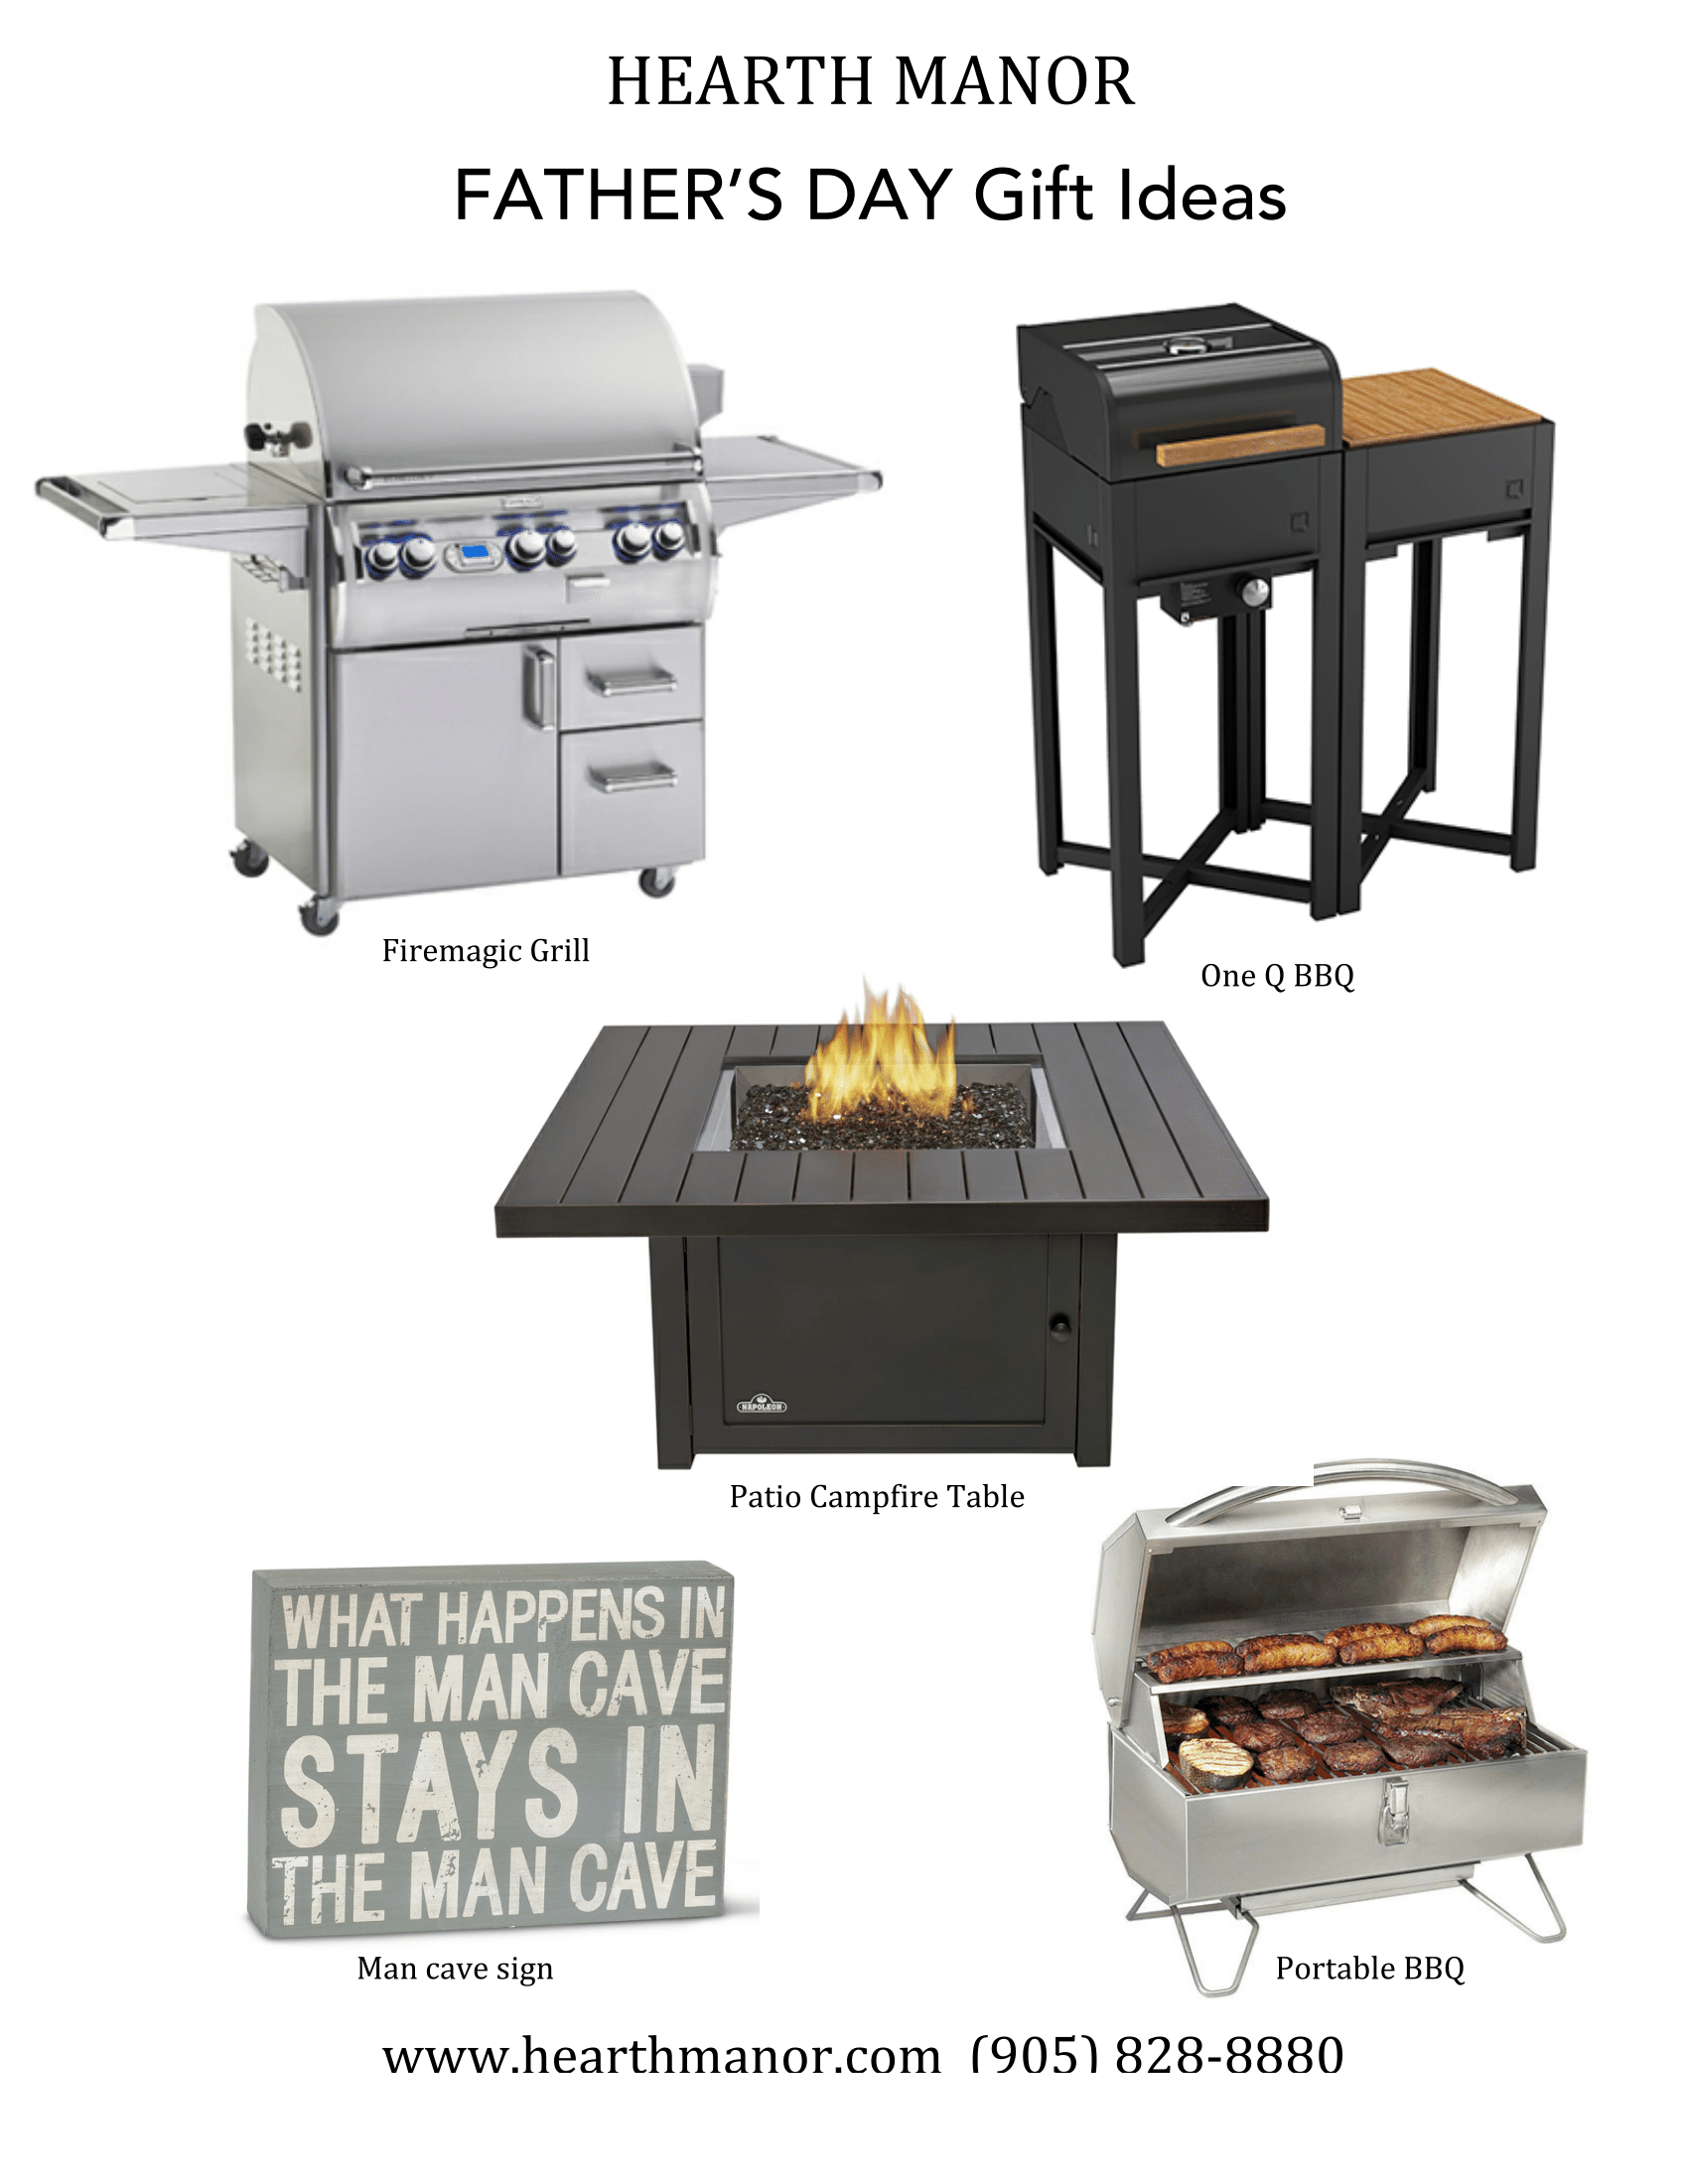 Fathers Day Gift Ideas. Firemagic Grill, Patio Table, Man Cave Sign, Portable BBQ